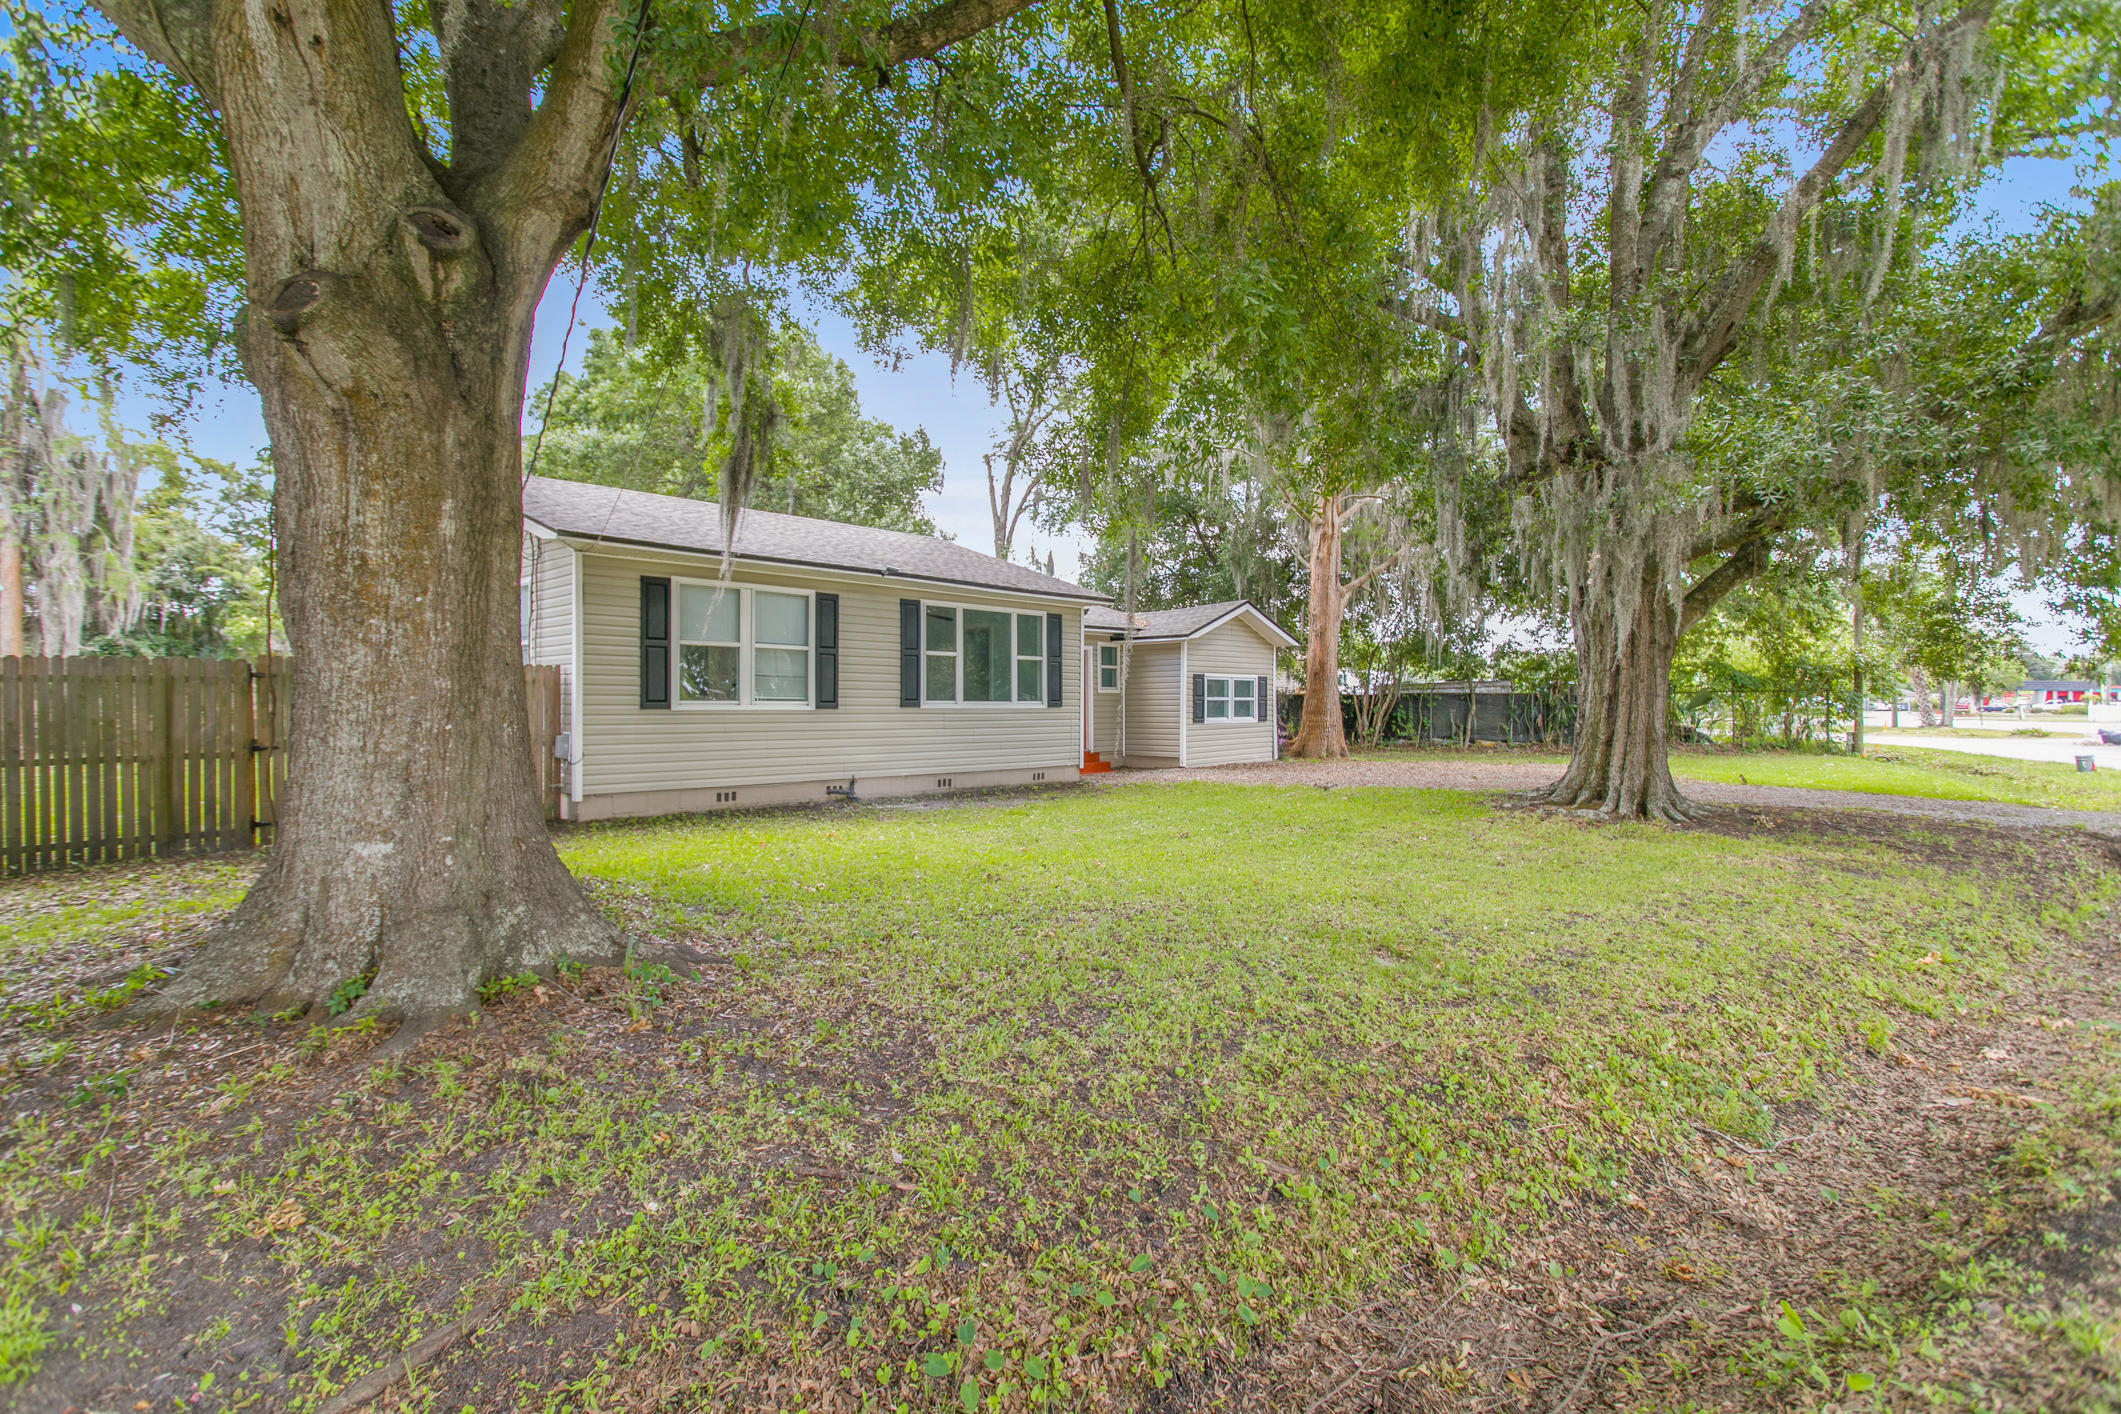 Welcome home to your freshly refinished Jacksonville bungalow! There's a lot to love about an older home that's been remodeled, you have those great bones...fantastic hardwood floors, fresh paint and a large, fenced yard and it's all waiting for you to make your offer. 2018 - New Roof/Floors/Windows and Kitchen and Bath updated.  Low maintenance vinyl siding.   Great opportunity to make this your home or office or both because of the commercial zoning - CCG2.  Conveniently located to interstate, shopping and restaurants so don't let this one get away...come see it and make your offer today!